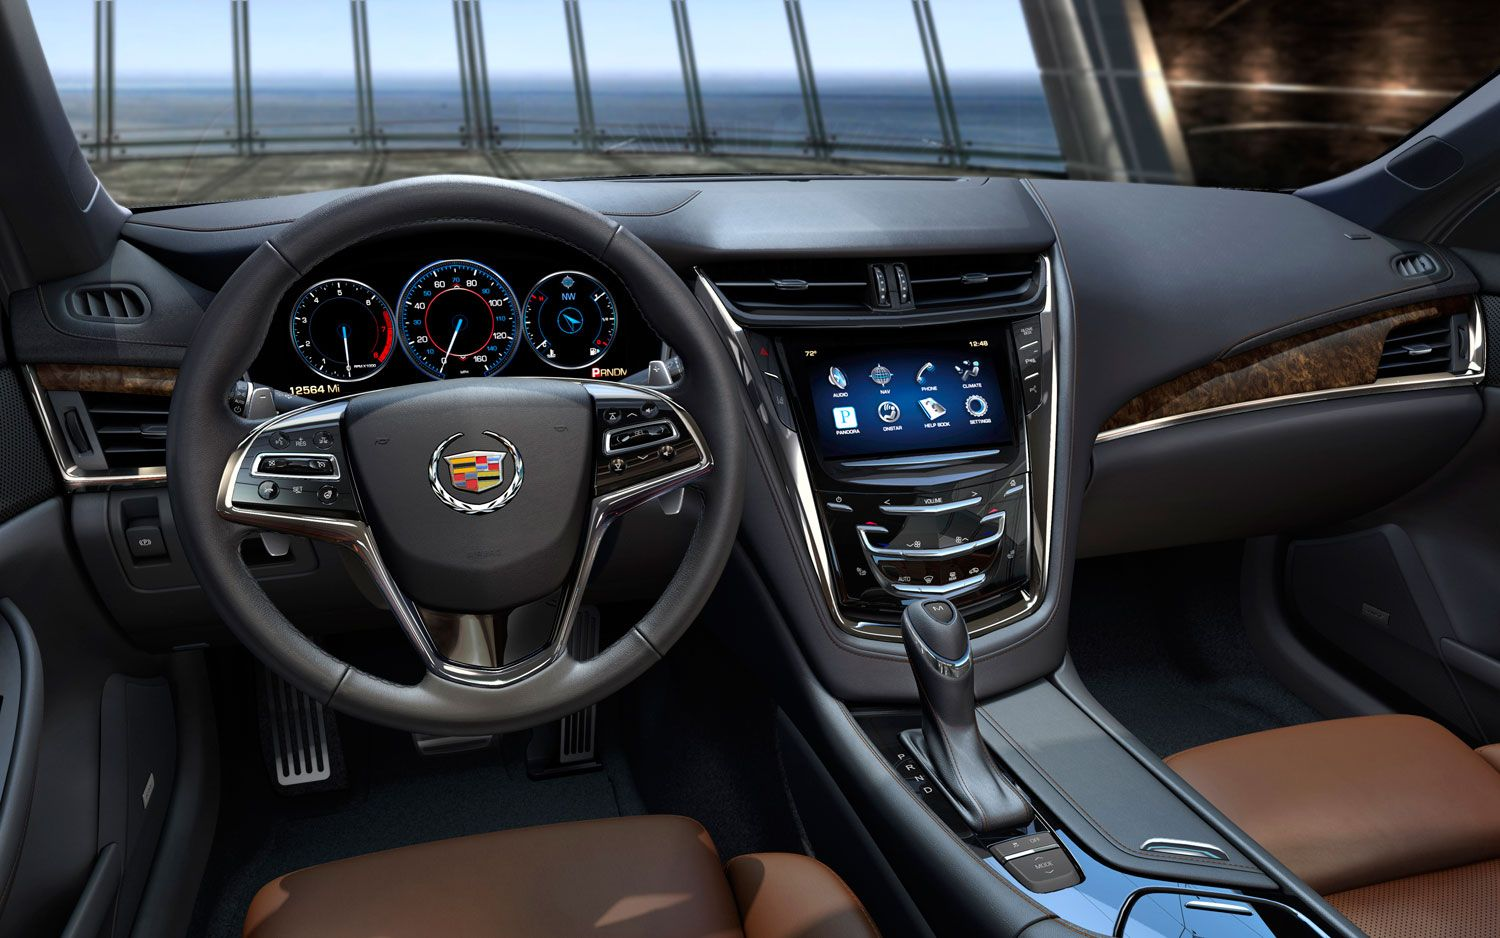 2014 Cadillac Cts Dash I Can T Wait To See The Cts Coupe And Cts V